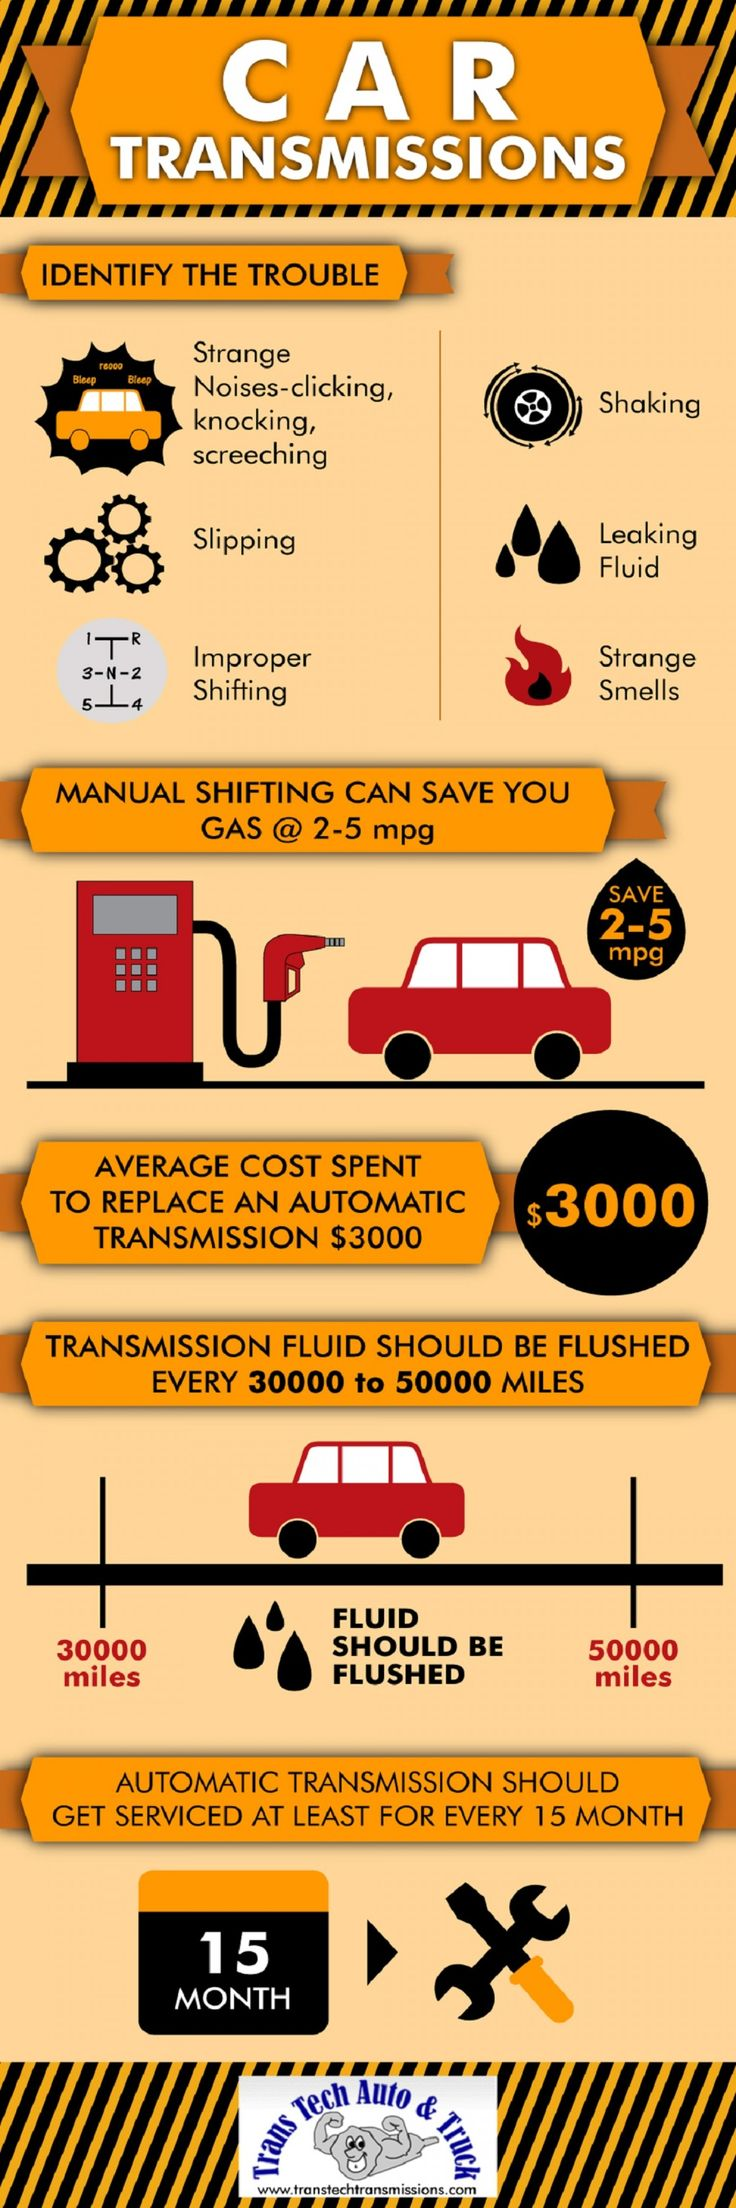 colorado springs auto transmission specialists infographic. Black Bedroom Furniture Sets. Home Design Ideas